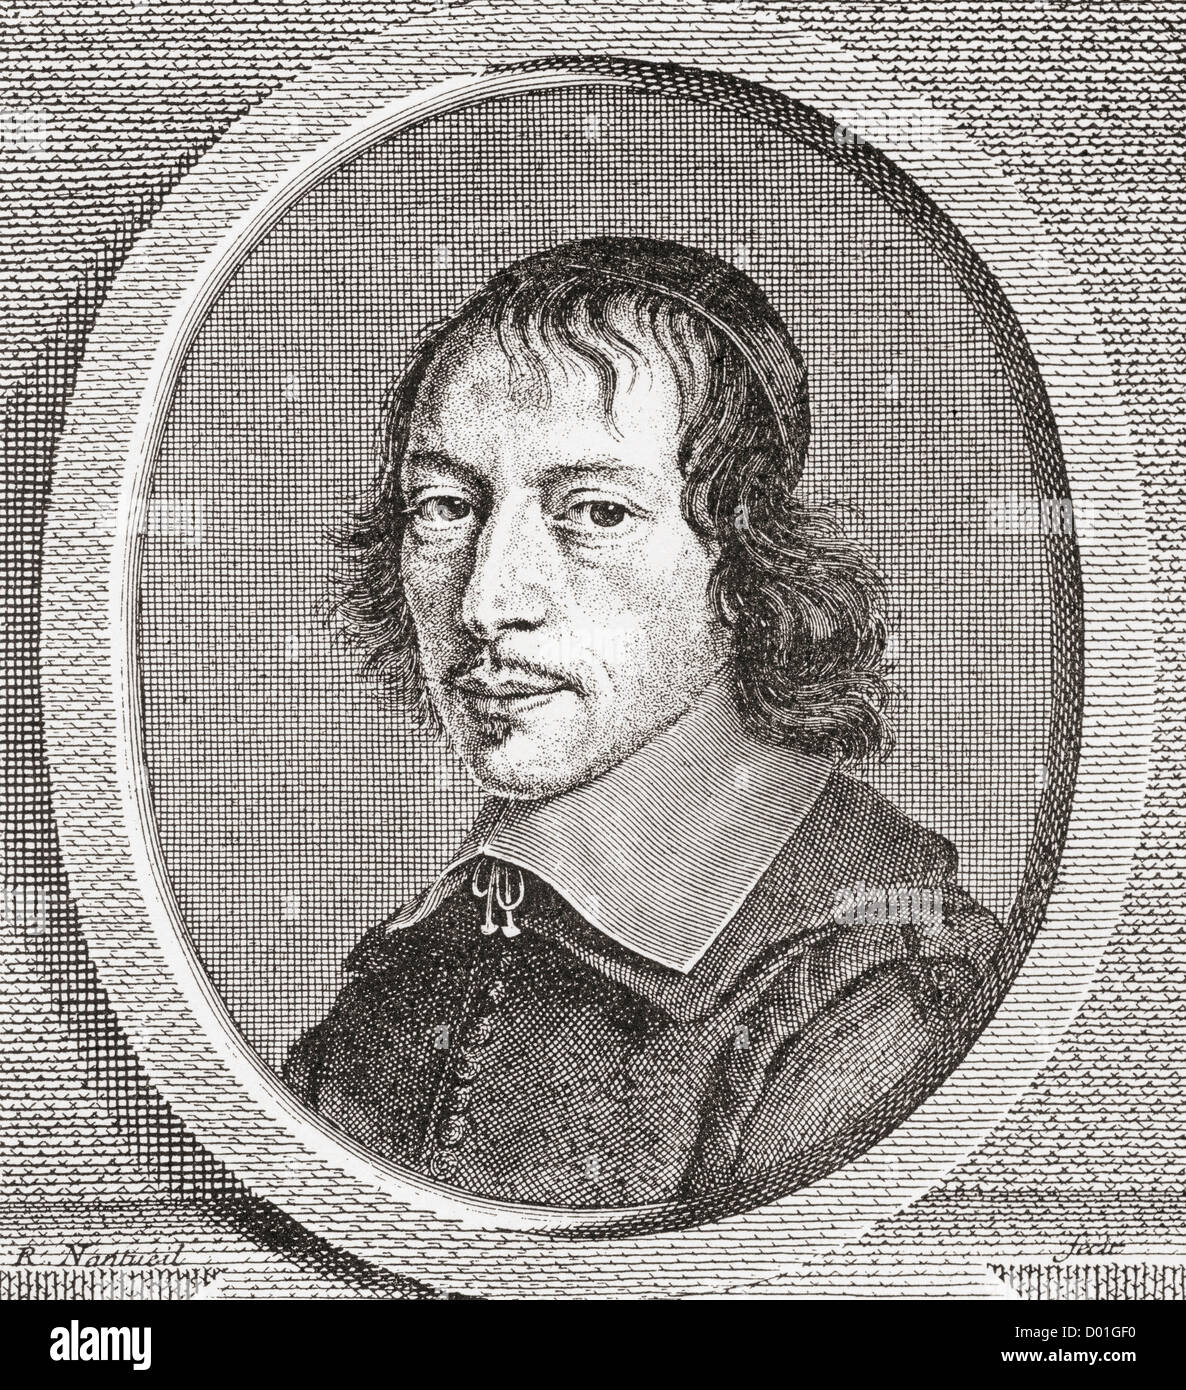 Gilles Ménage, 1613 – 1692. 17th century French scholar. - Stock Image